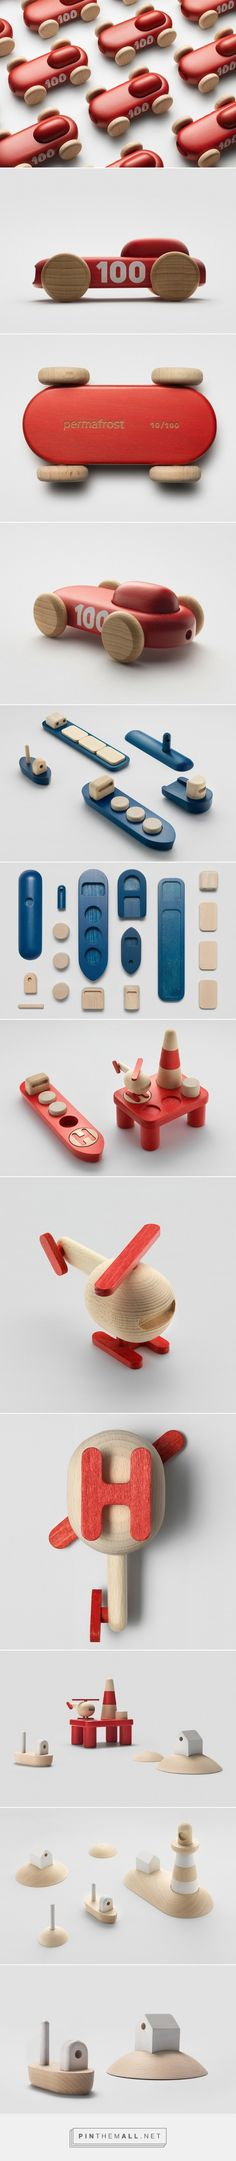 Wooden Toys by Permafrost | Inspiration Grid | Design Inspiration - created via http://pinthemall.net